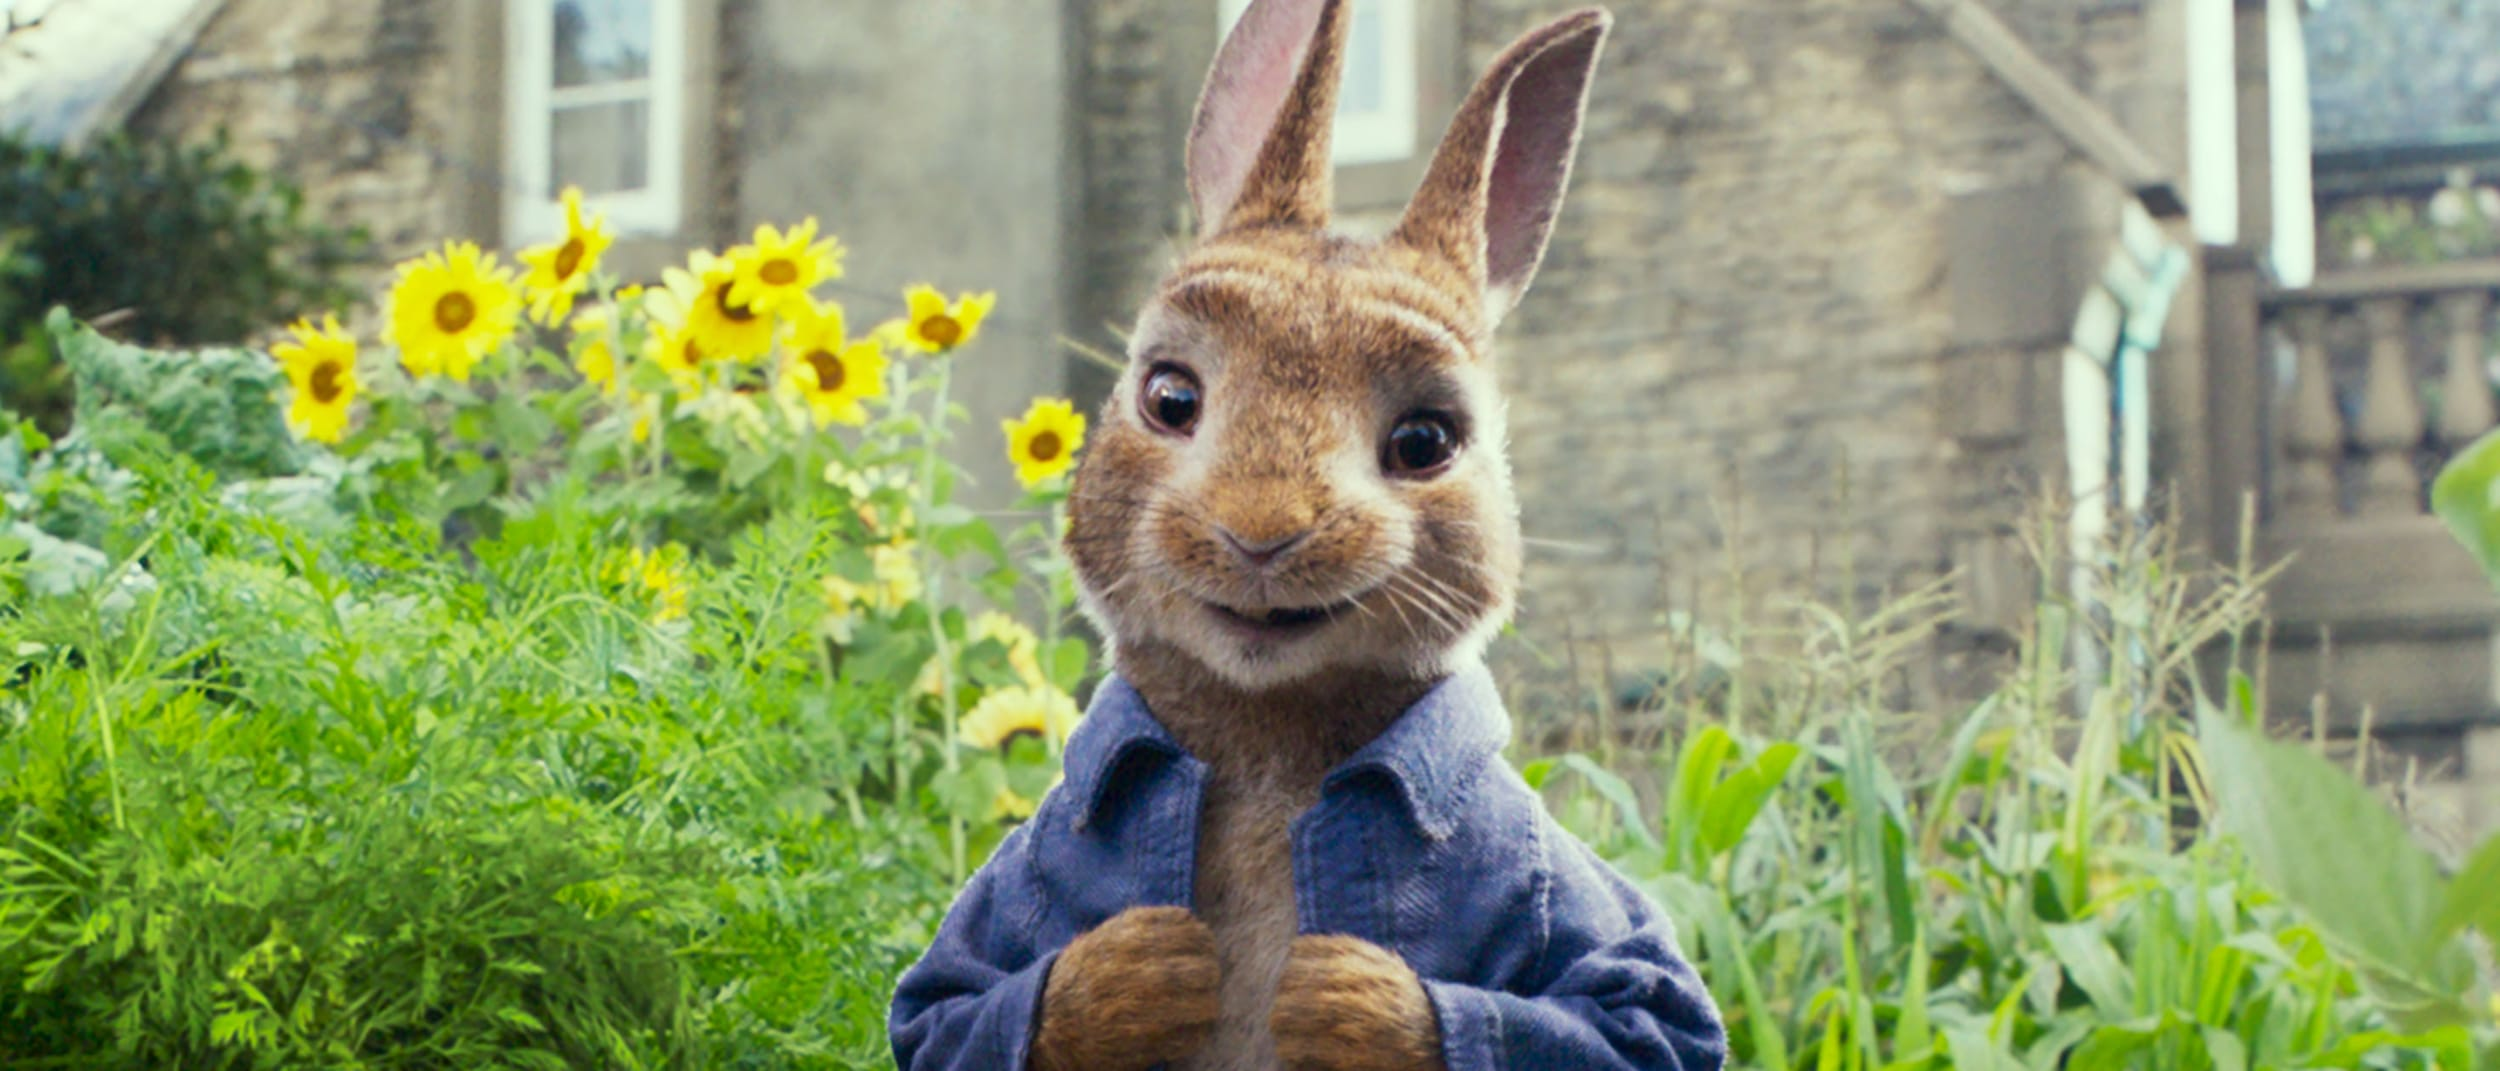 Find Peter Rabbit and friends